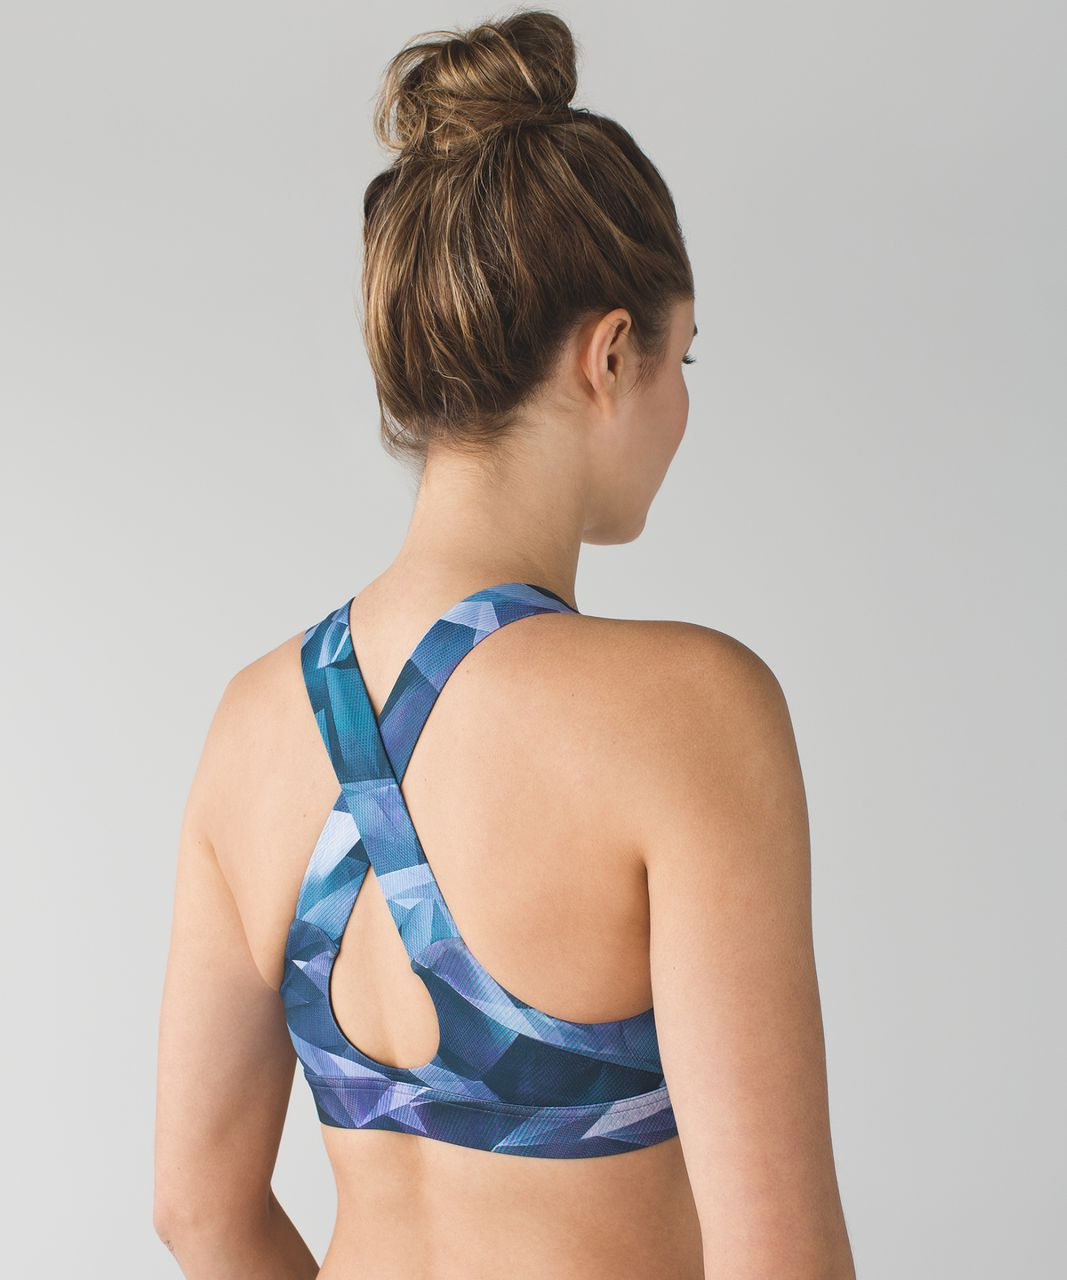 699b78a605 Lululemon All Sport Bra III - Pretty Prism Multi - lulu fanatics